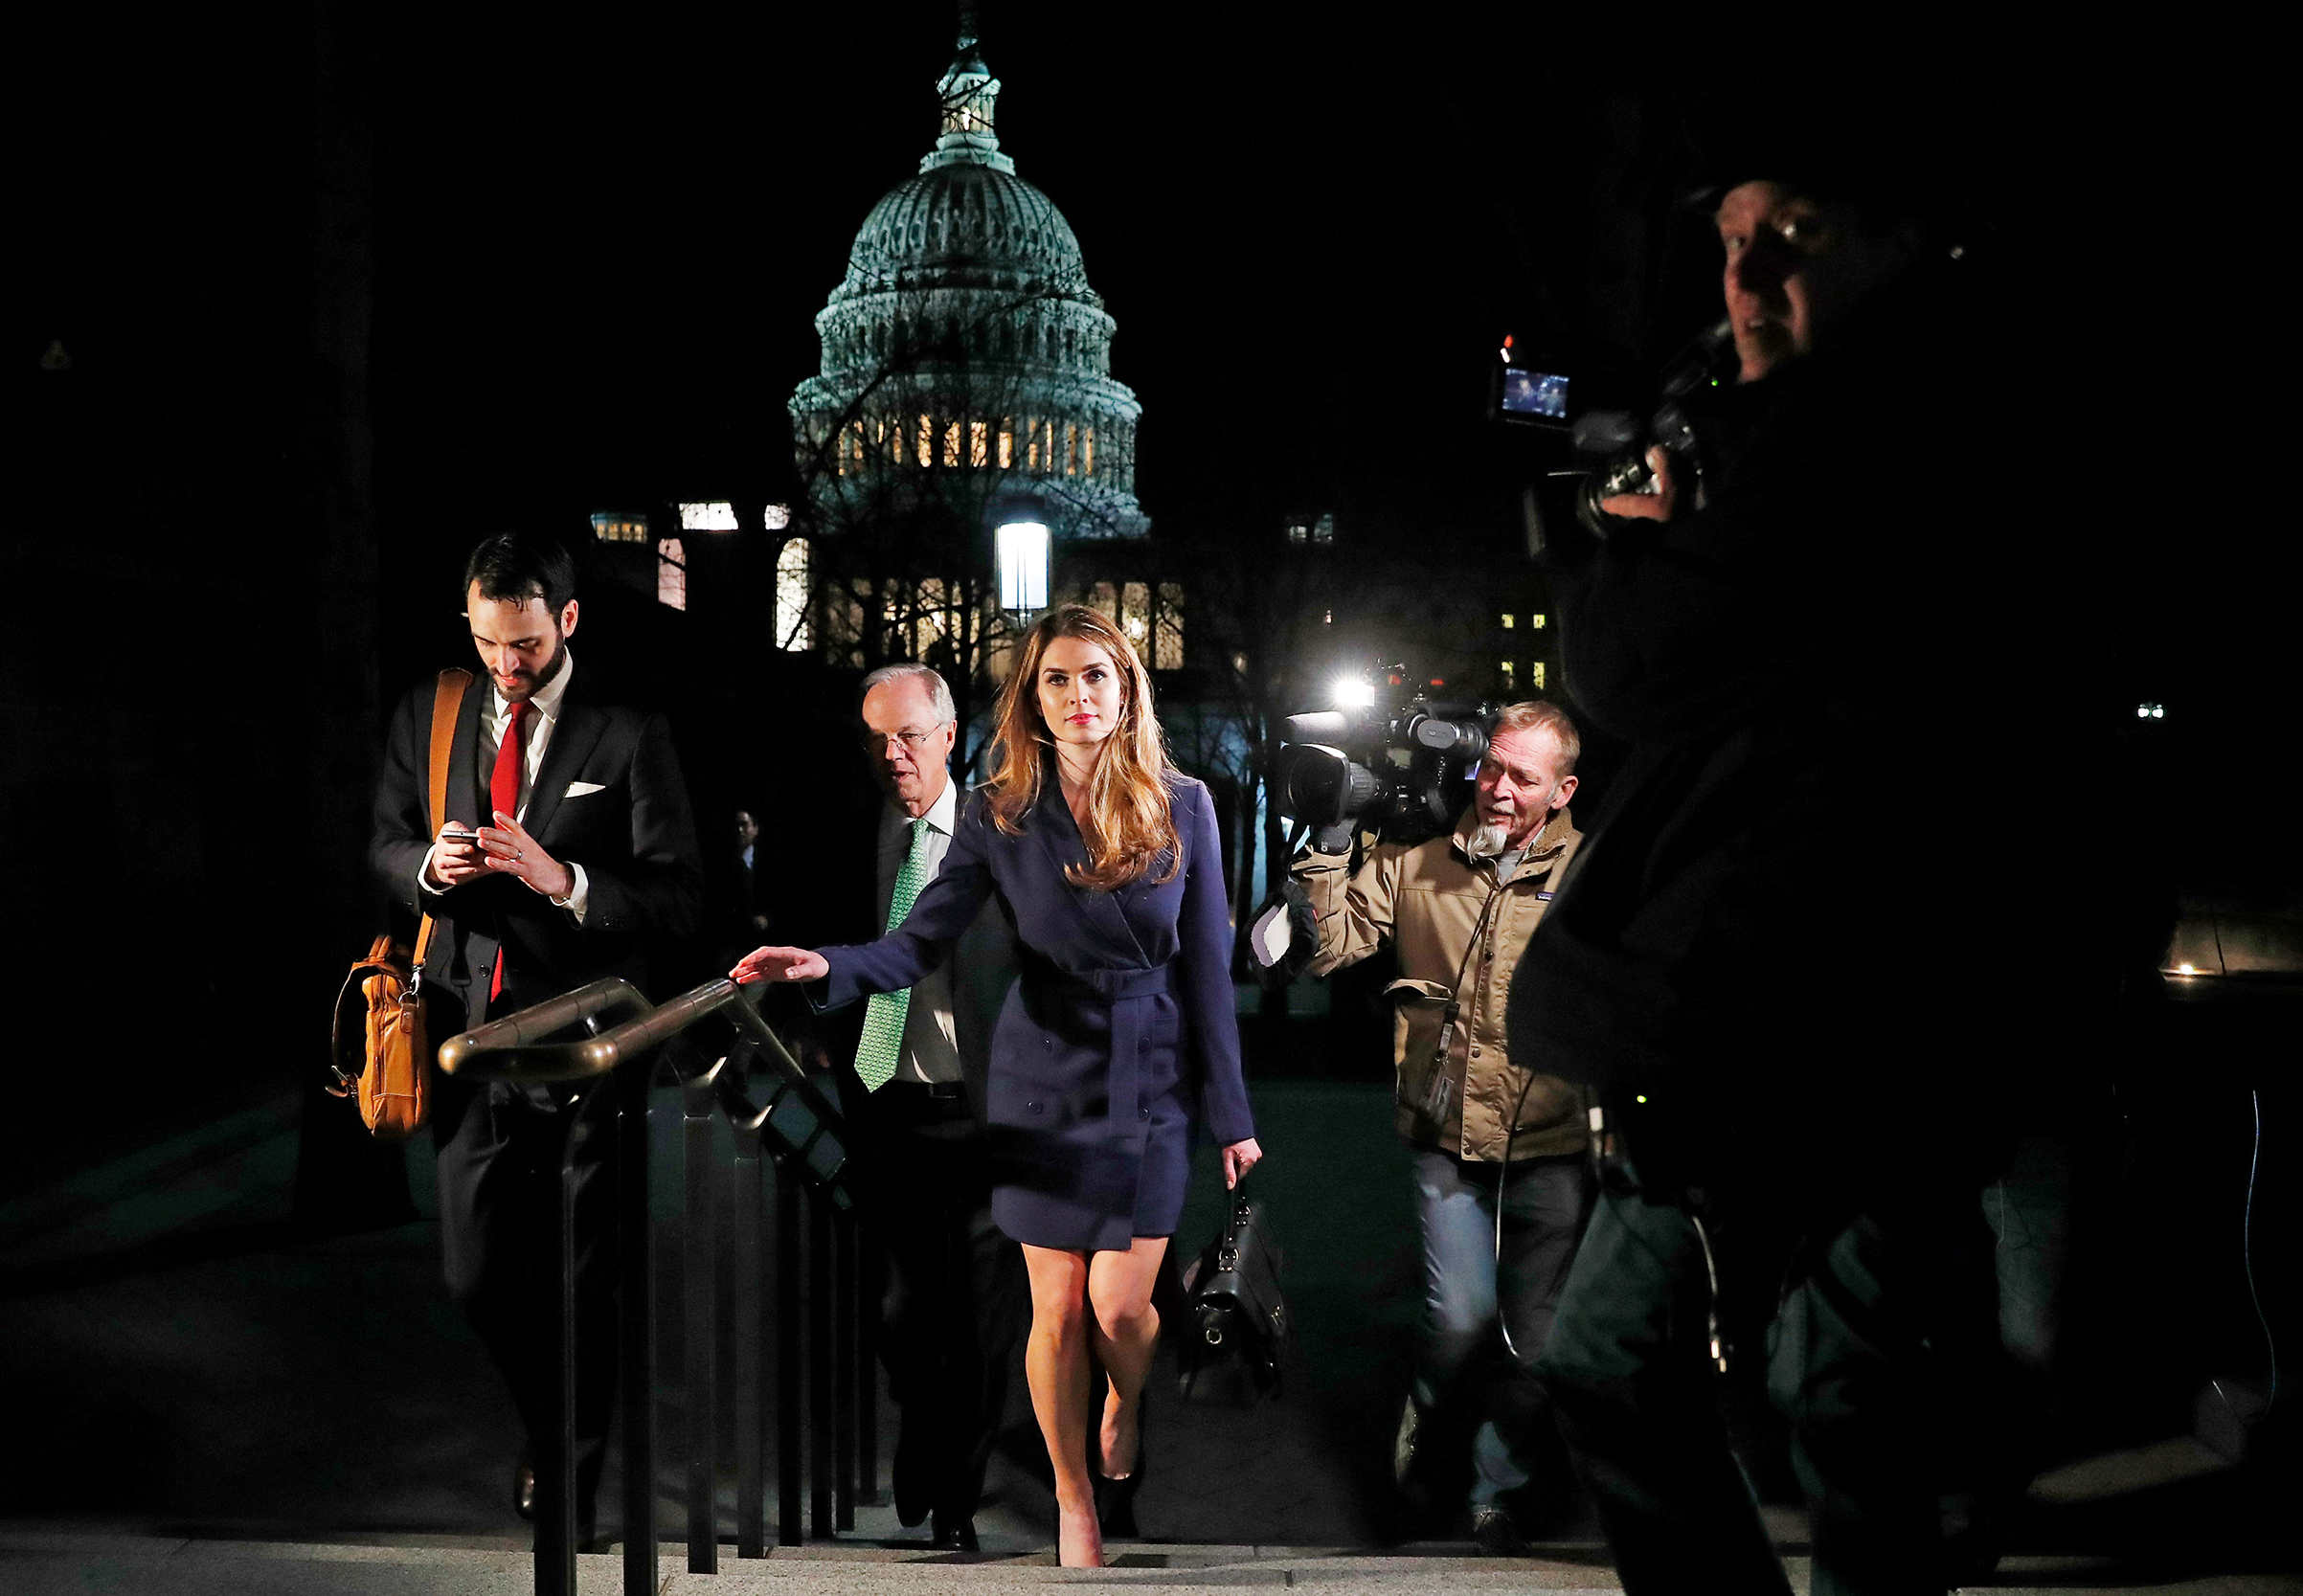 White House Communications Director Hope Hicks leaves after attending the House Intelligence Committee closed door meeting in Washington on Feb. 27, 2018.